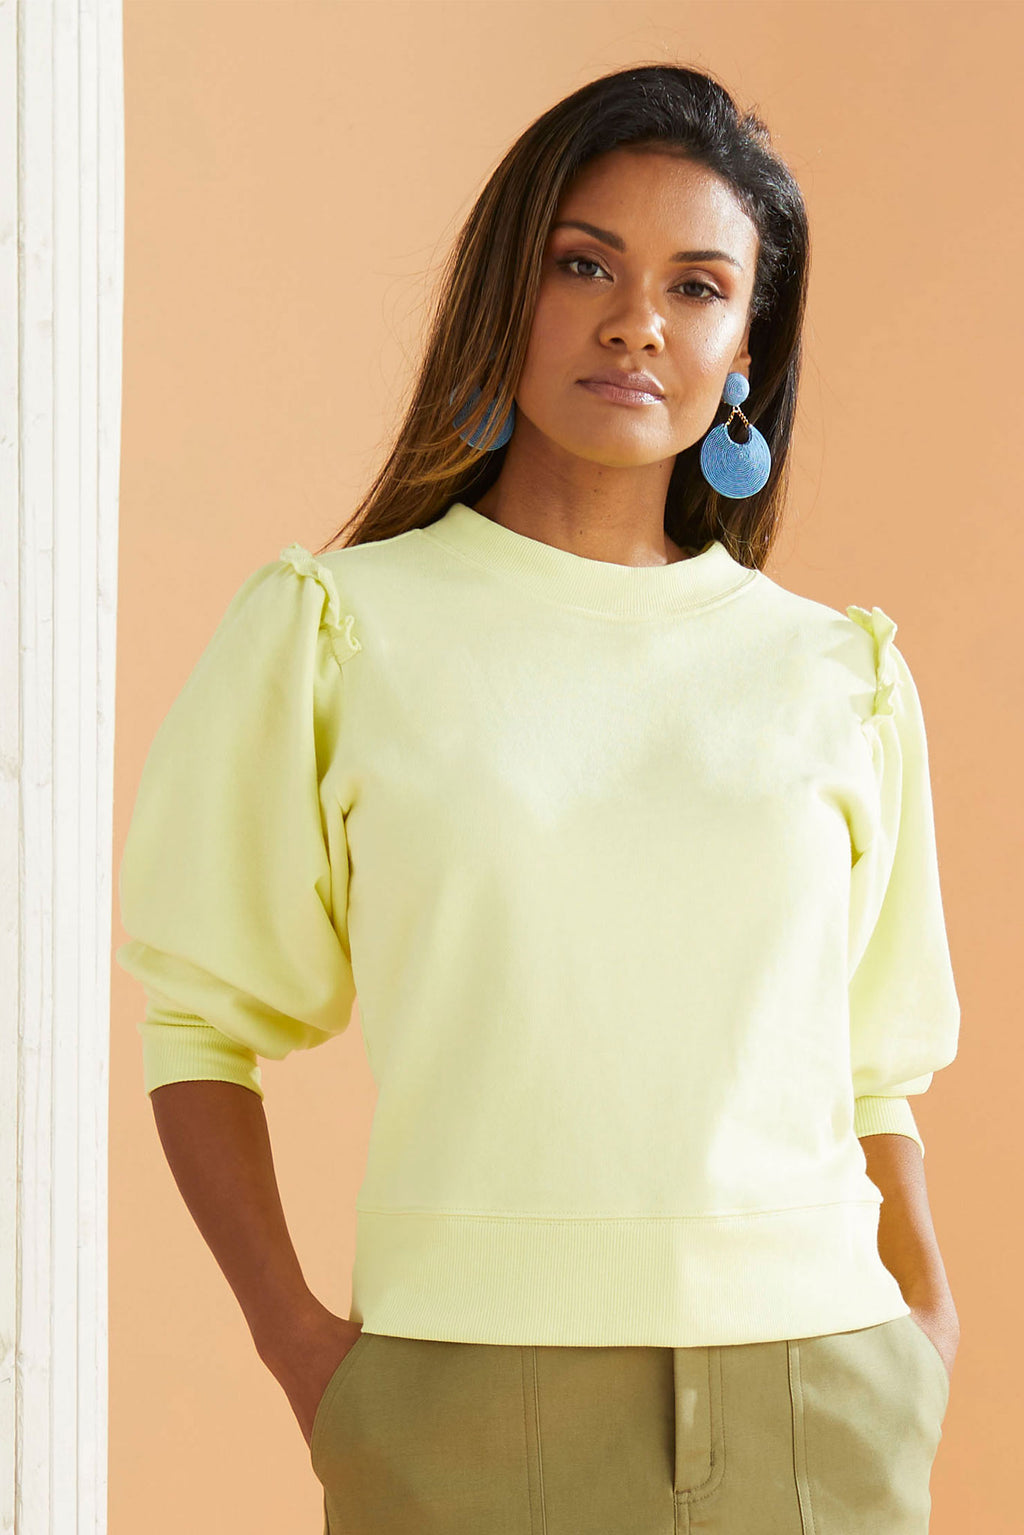 Lime Sweatshirt with ruffle detailing on shoulder